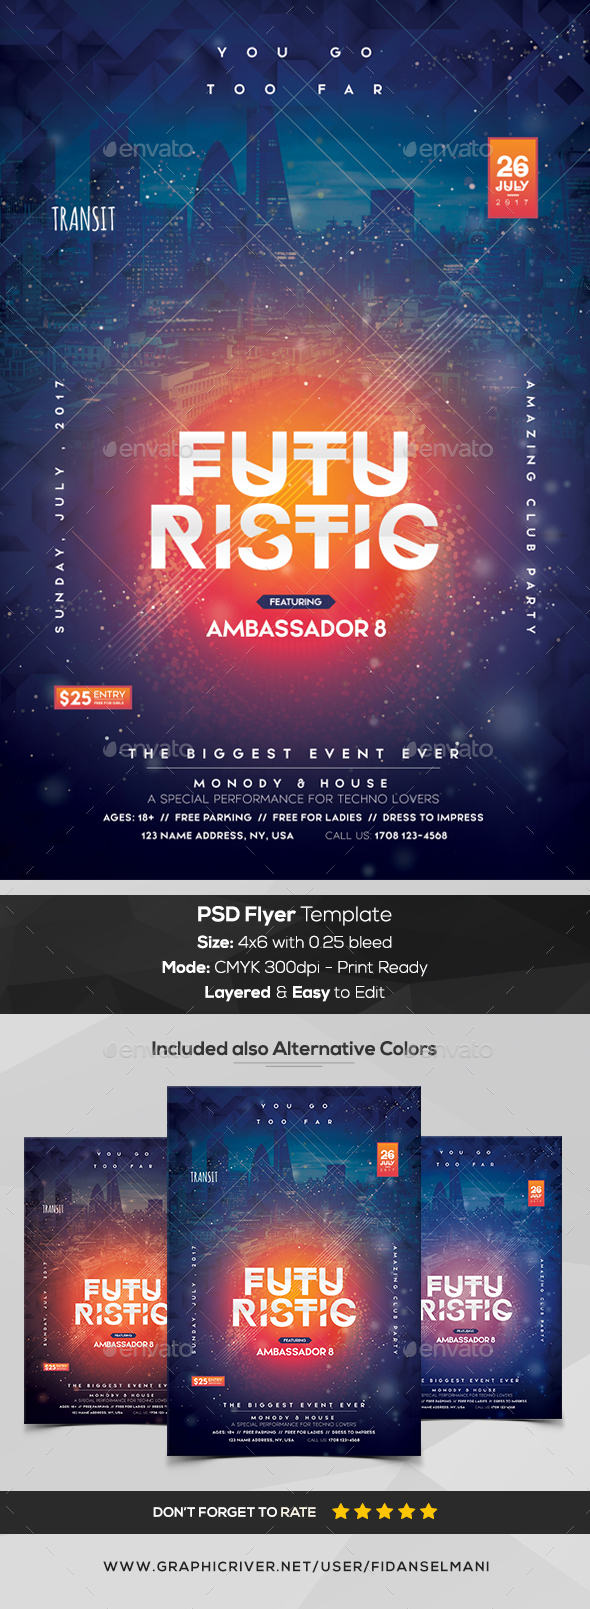 Futuristic - Premium PSD Flyer Template - Events Flyers